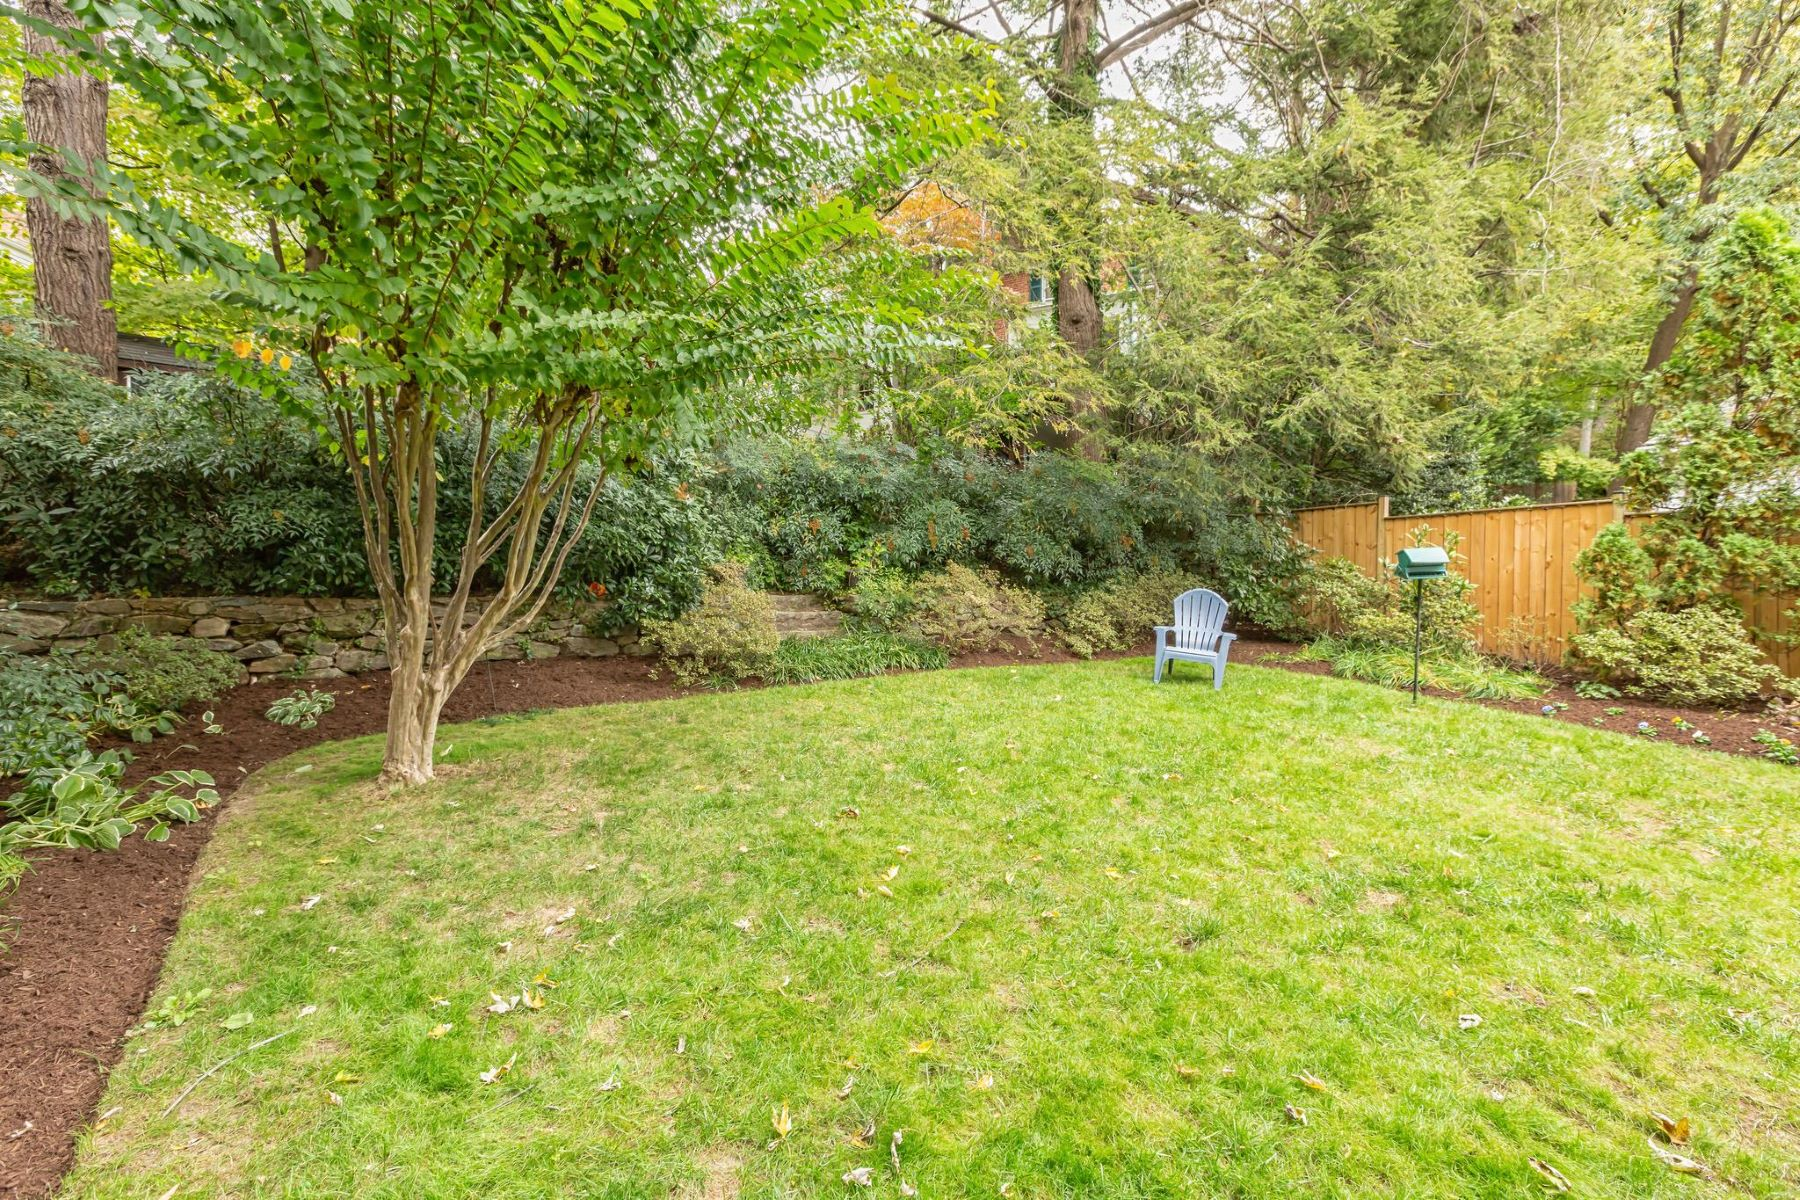 Additional photo for property listing at 4745 Reservoir Rd NW 4745 Reservoir Rd NW Washington, District Of Columbia 20007 United States